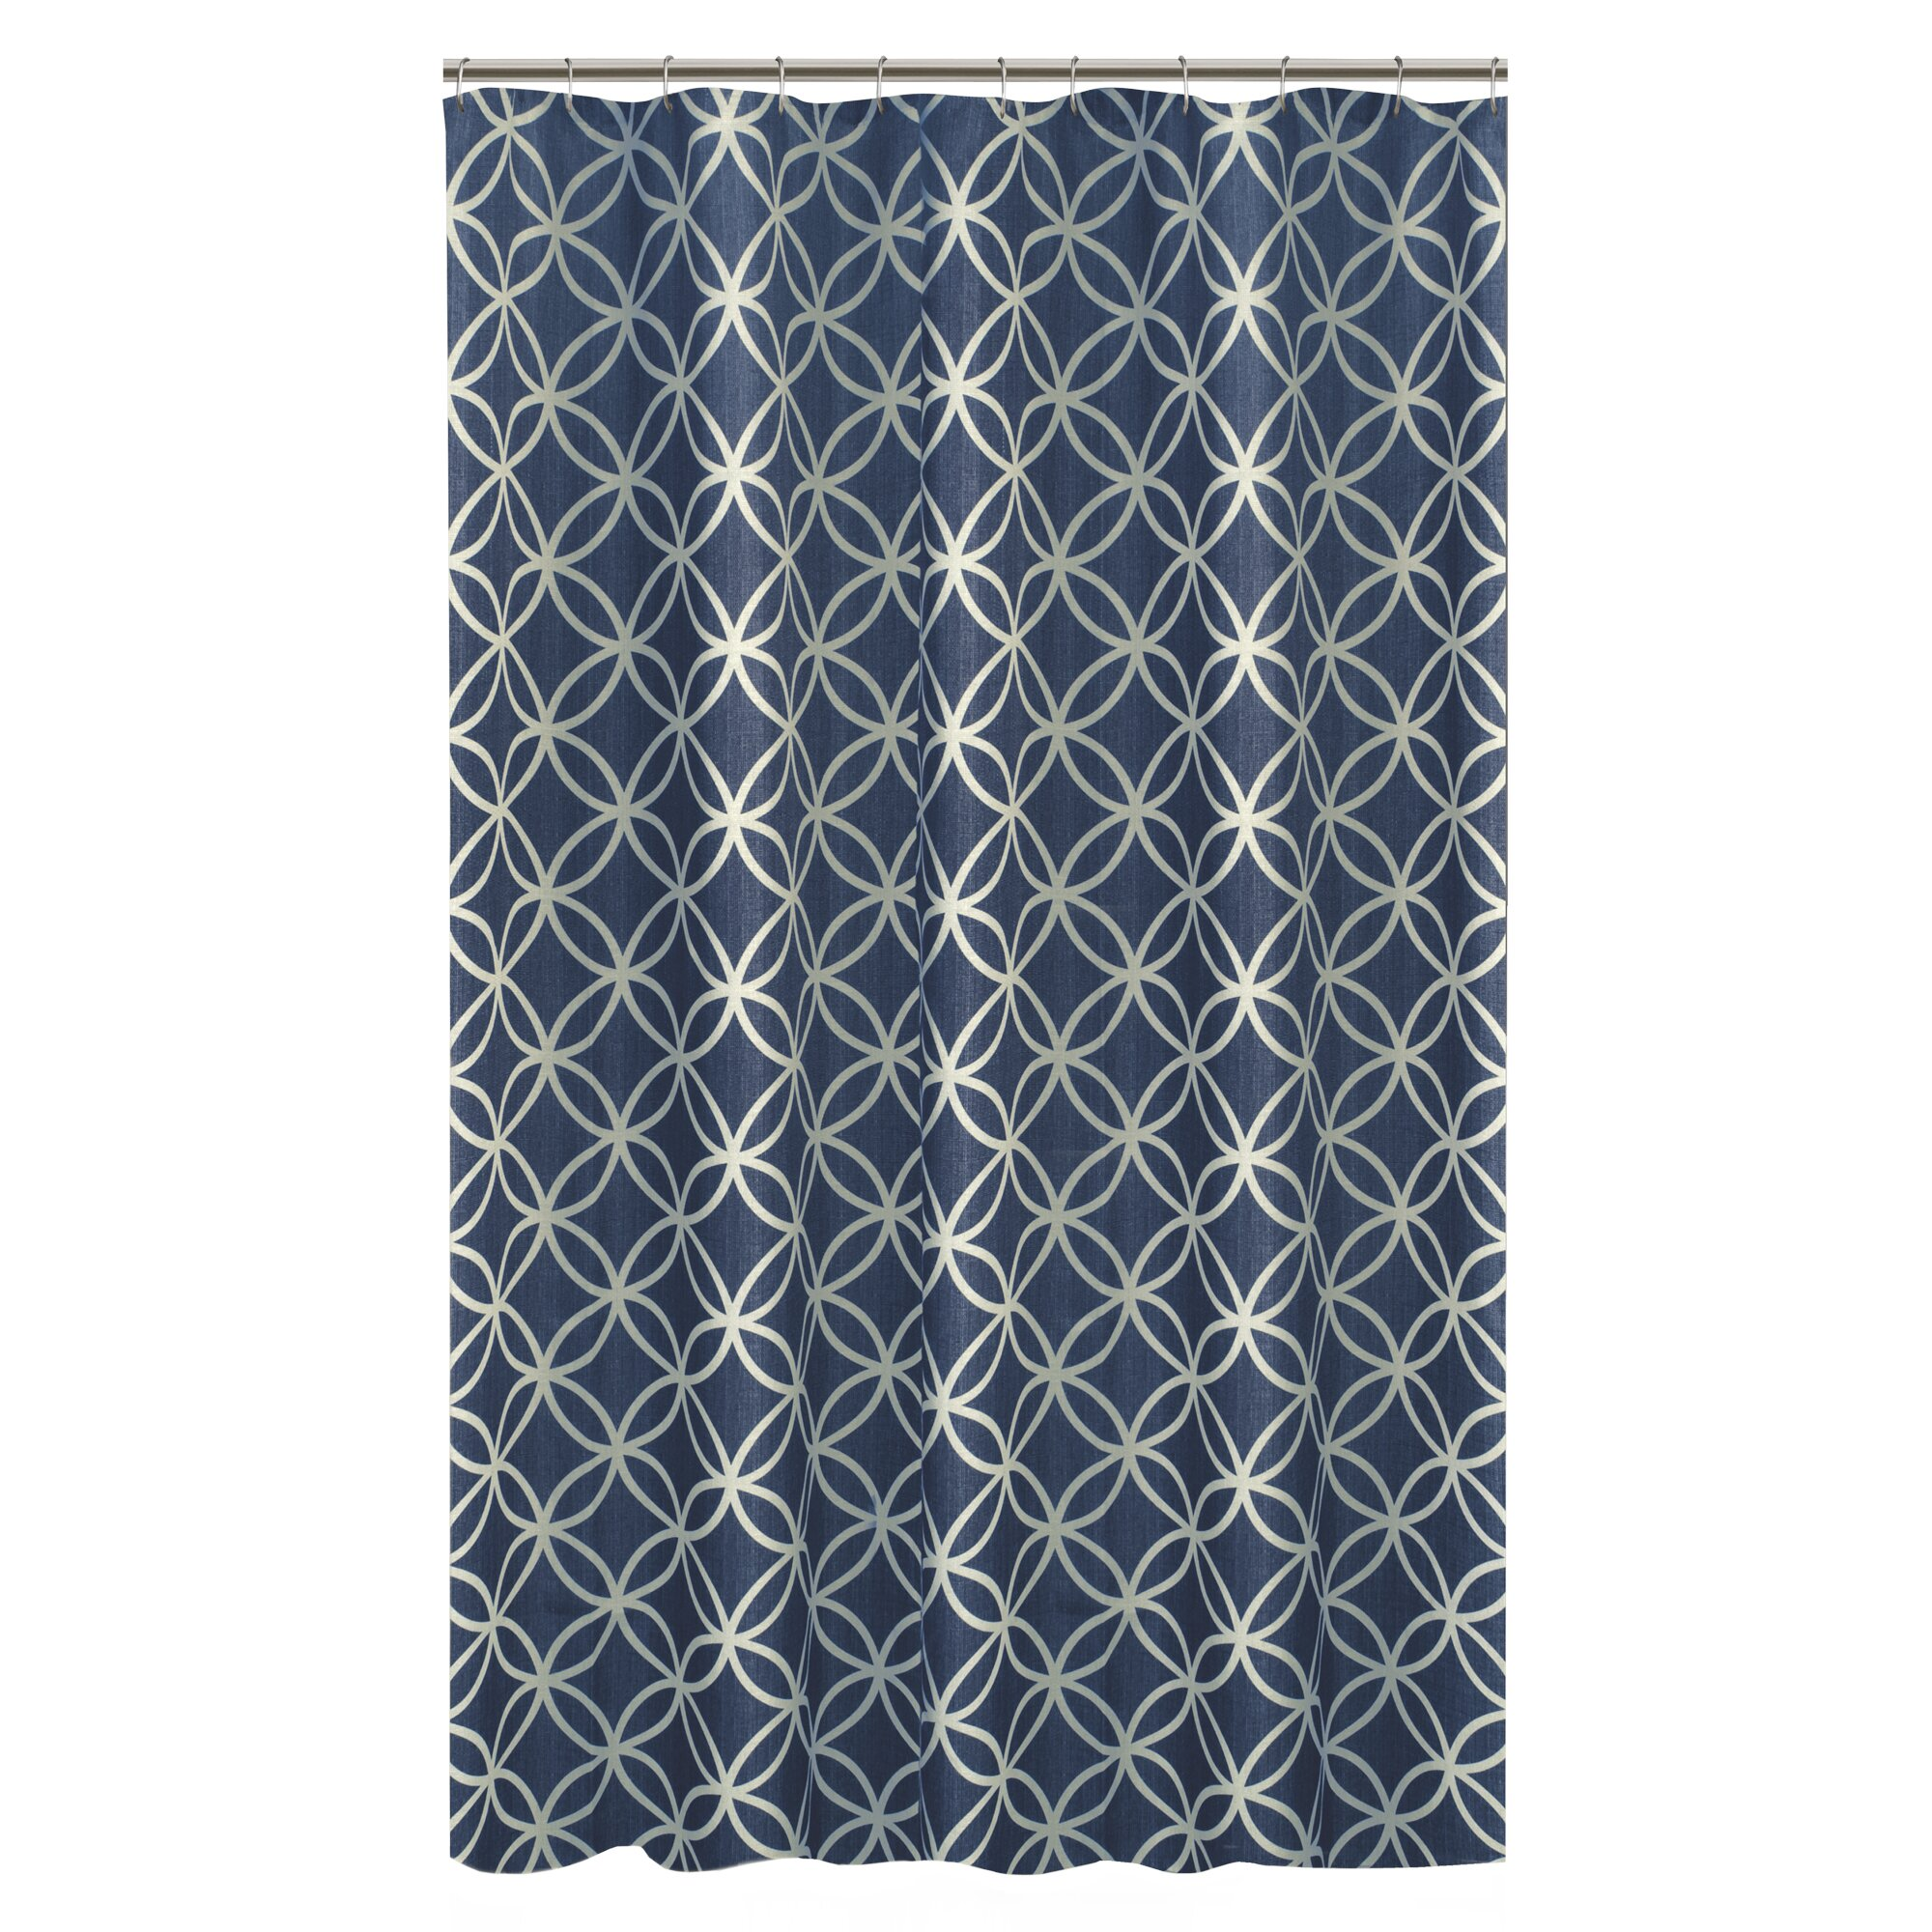 Light teal shower curtain - Brown and light blue curtains ...